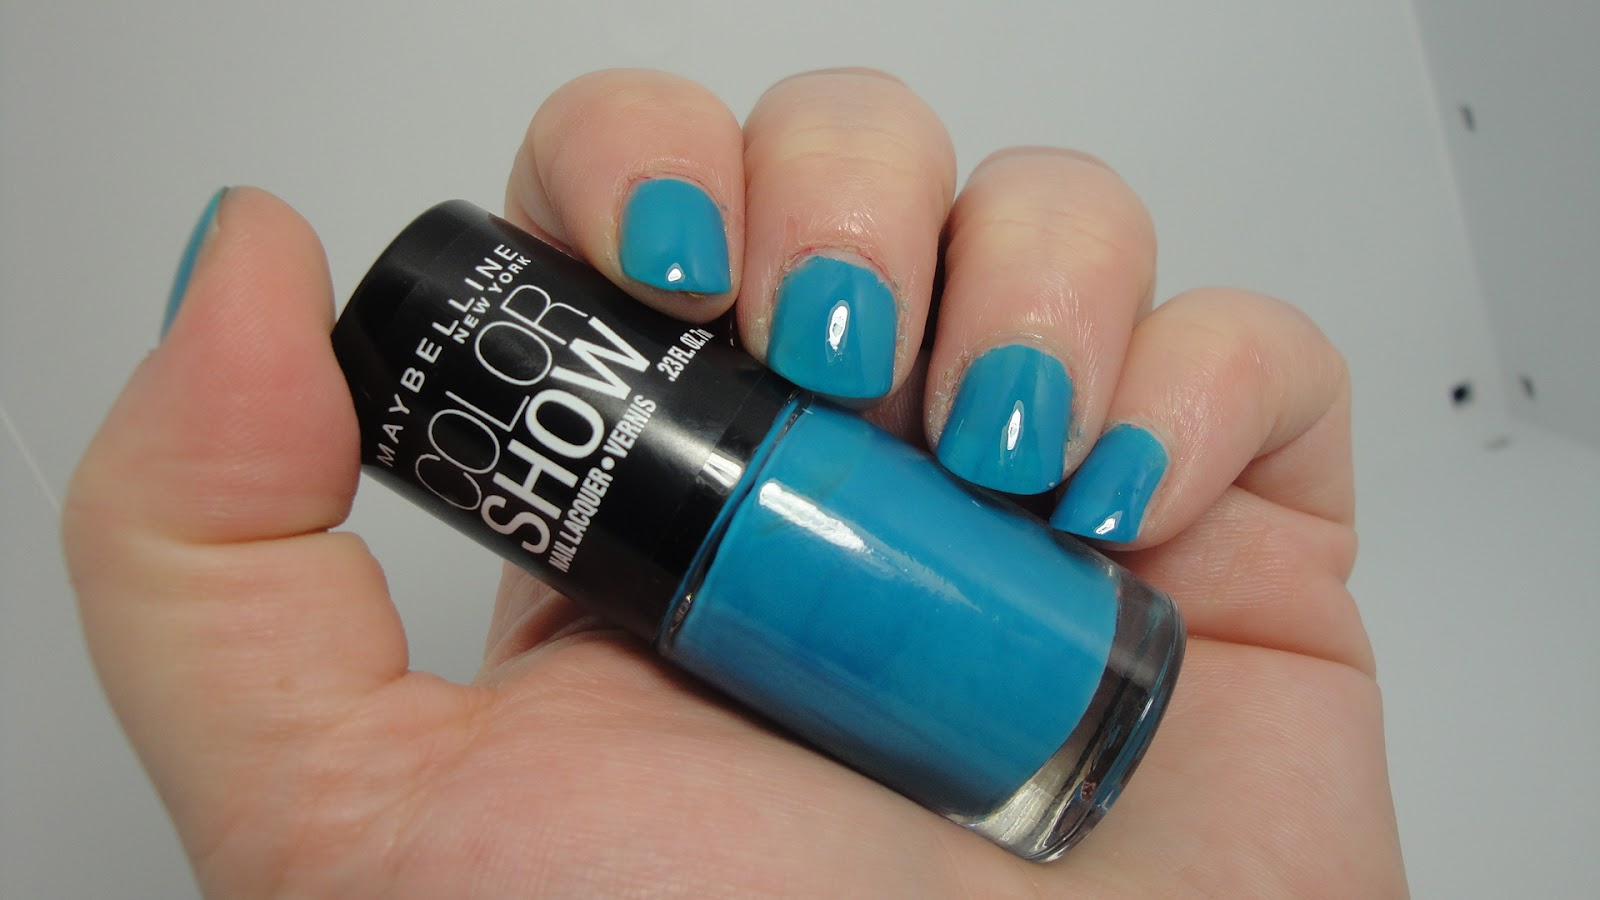 Jayded Dreaming Beauty Blog Notd Maybelline Color Show Nail Lacquer 370 Shocking Seas